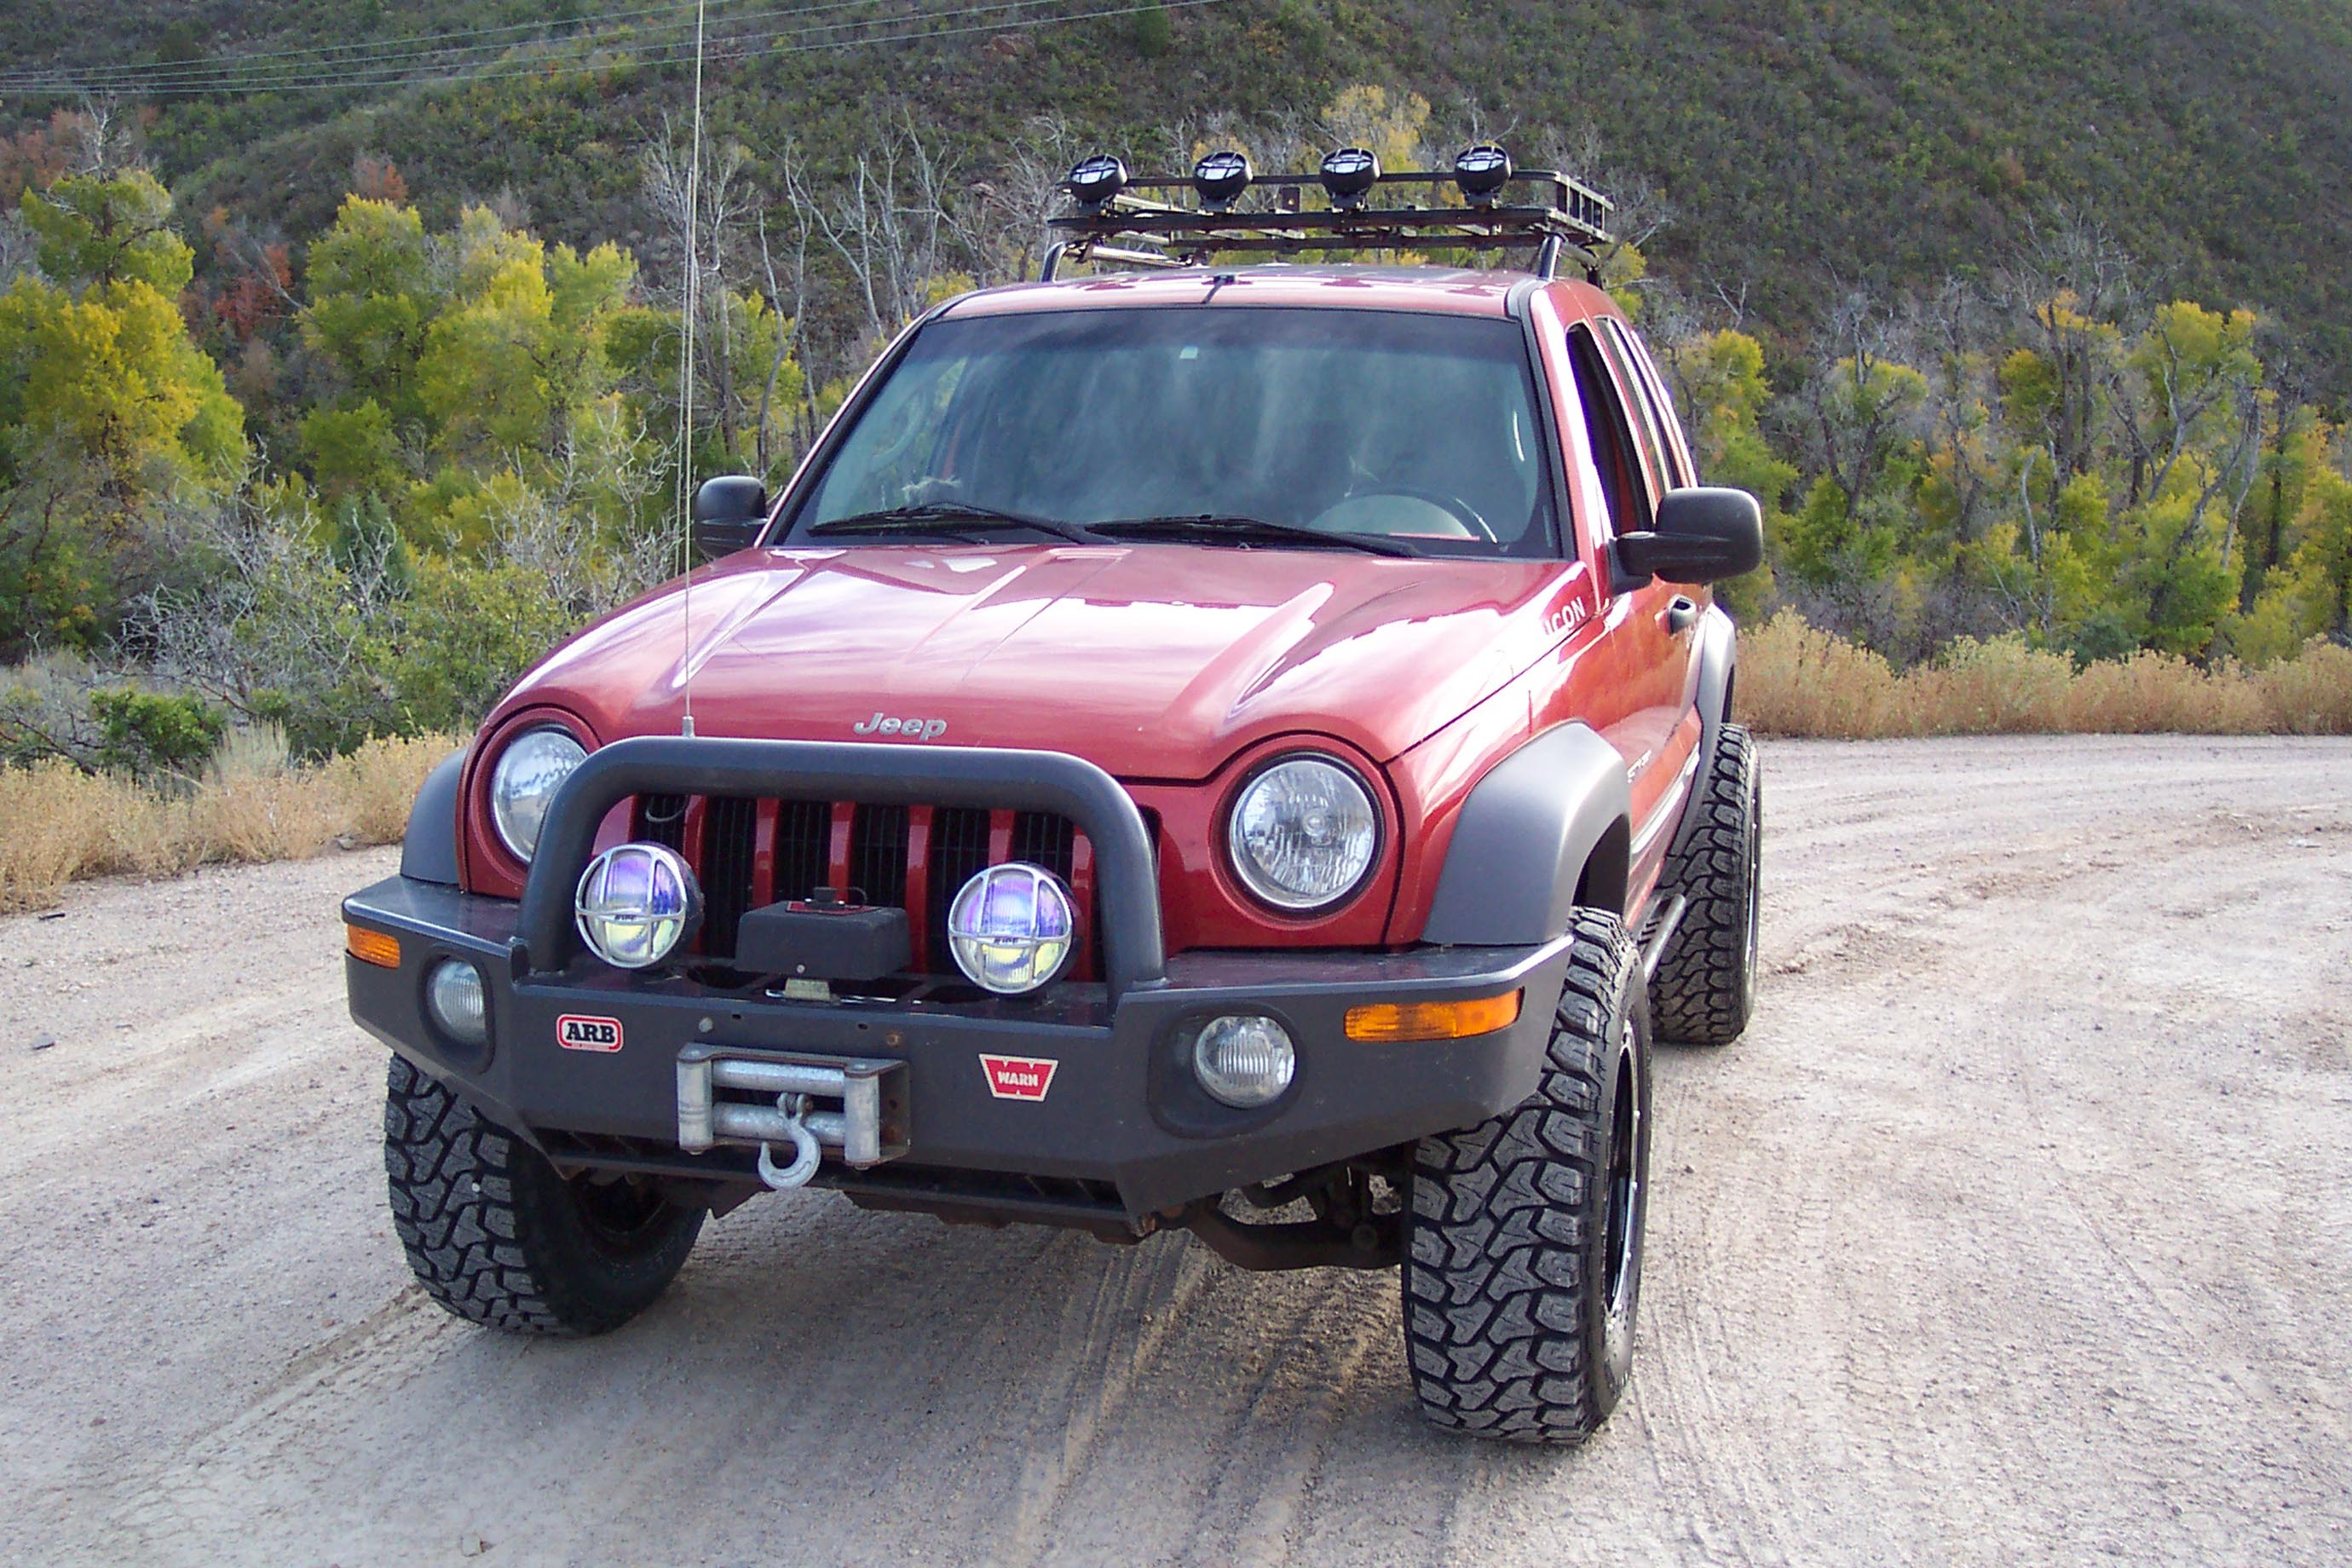 Jeep Liberty Roof Rails 02 12 Jeep Liberty Roof Rails